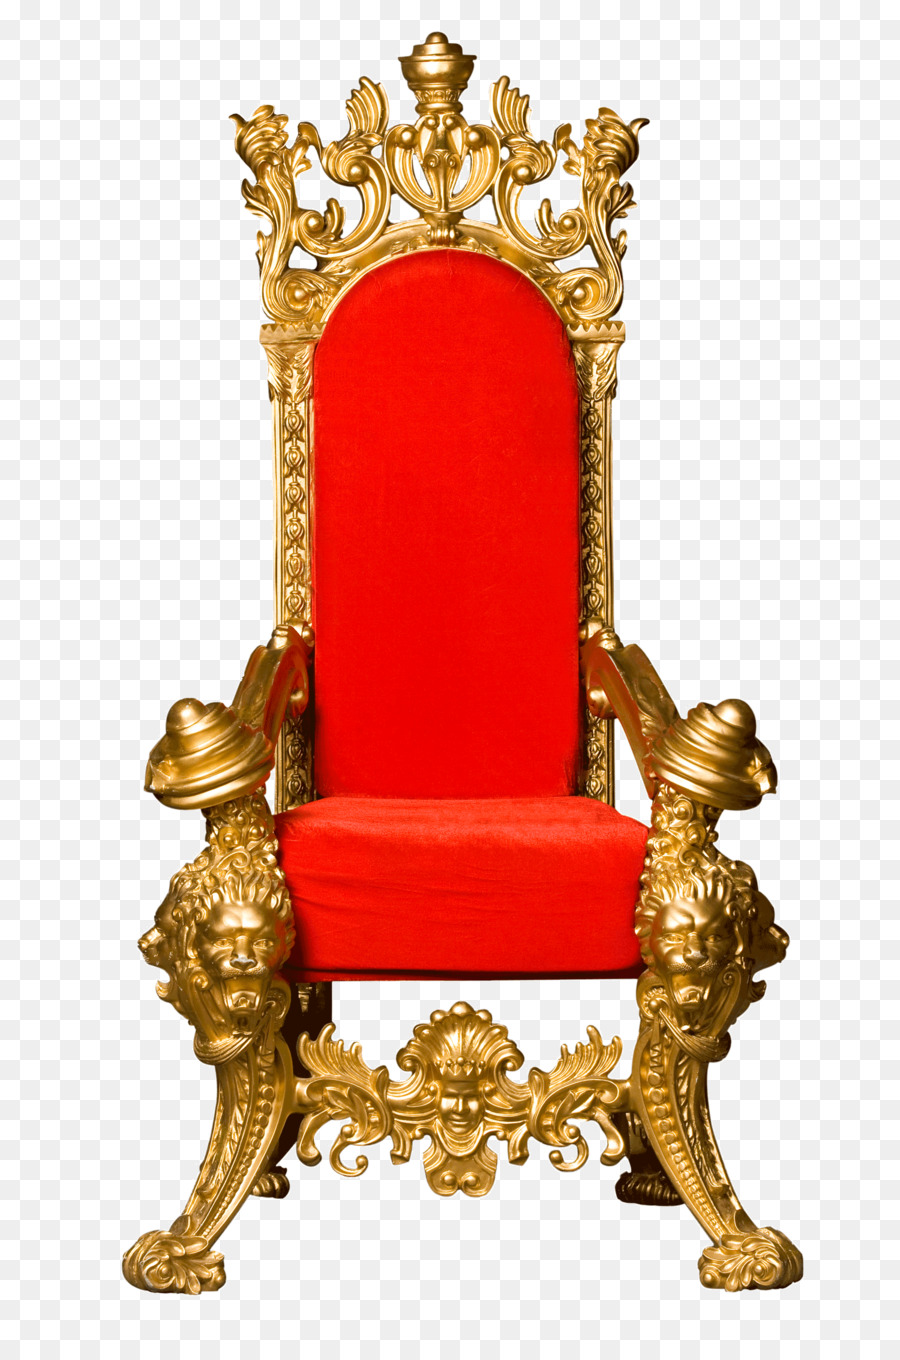 throne png clipart Throne Clip art